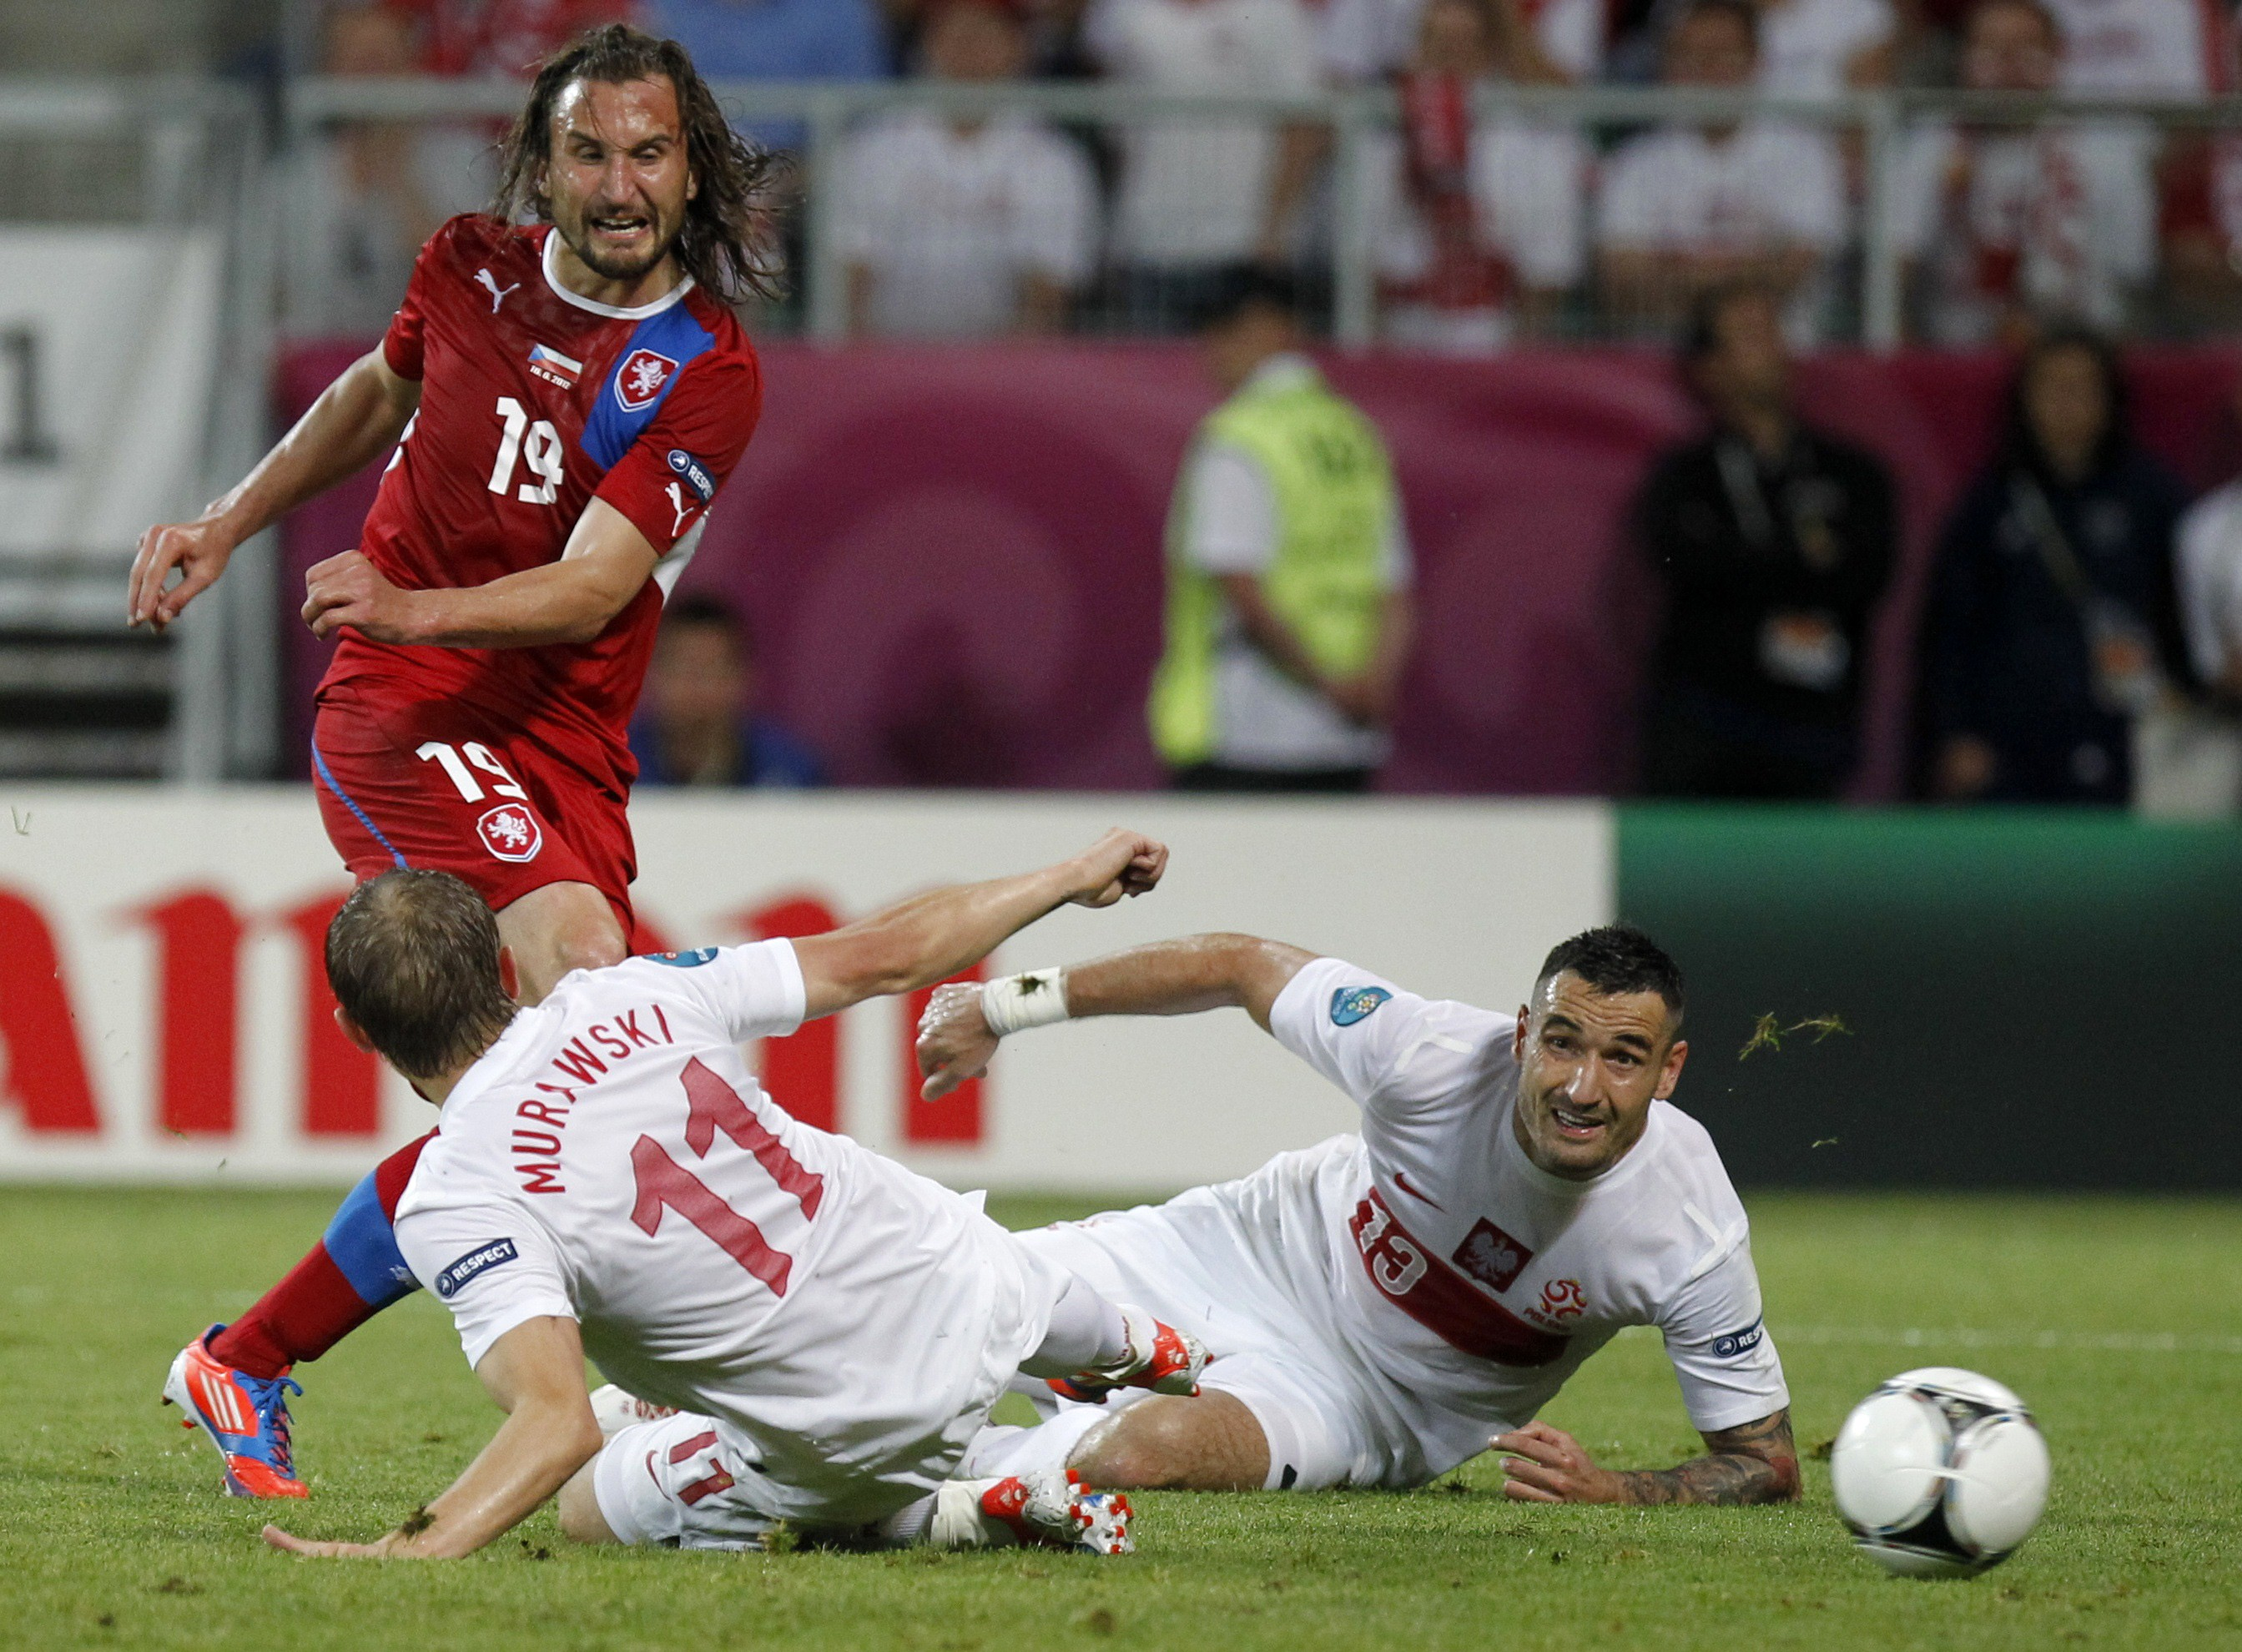 Czechs through, Poland out - Football - Euro 2012